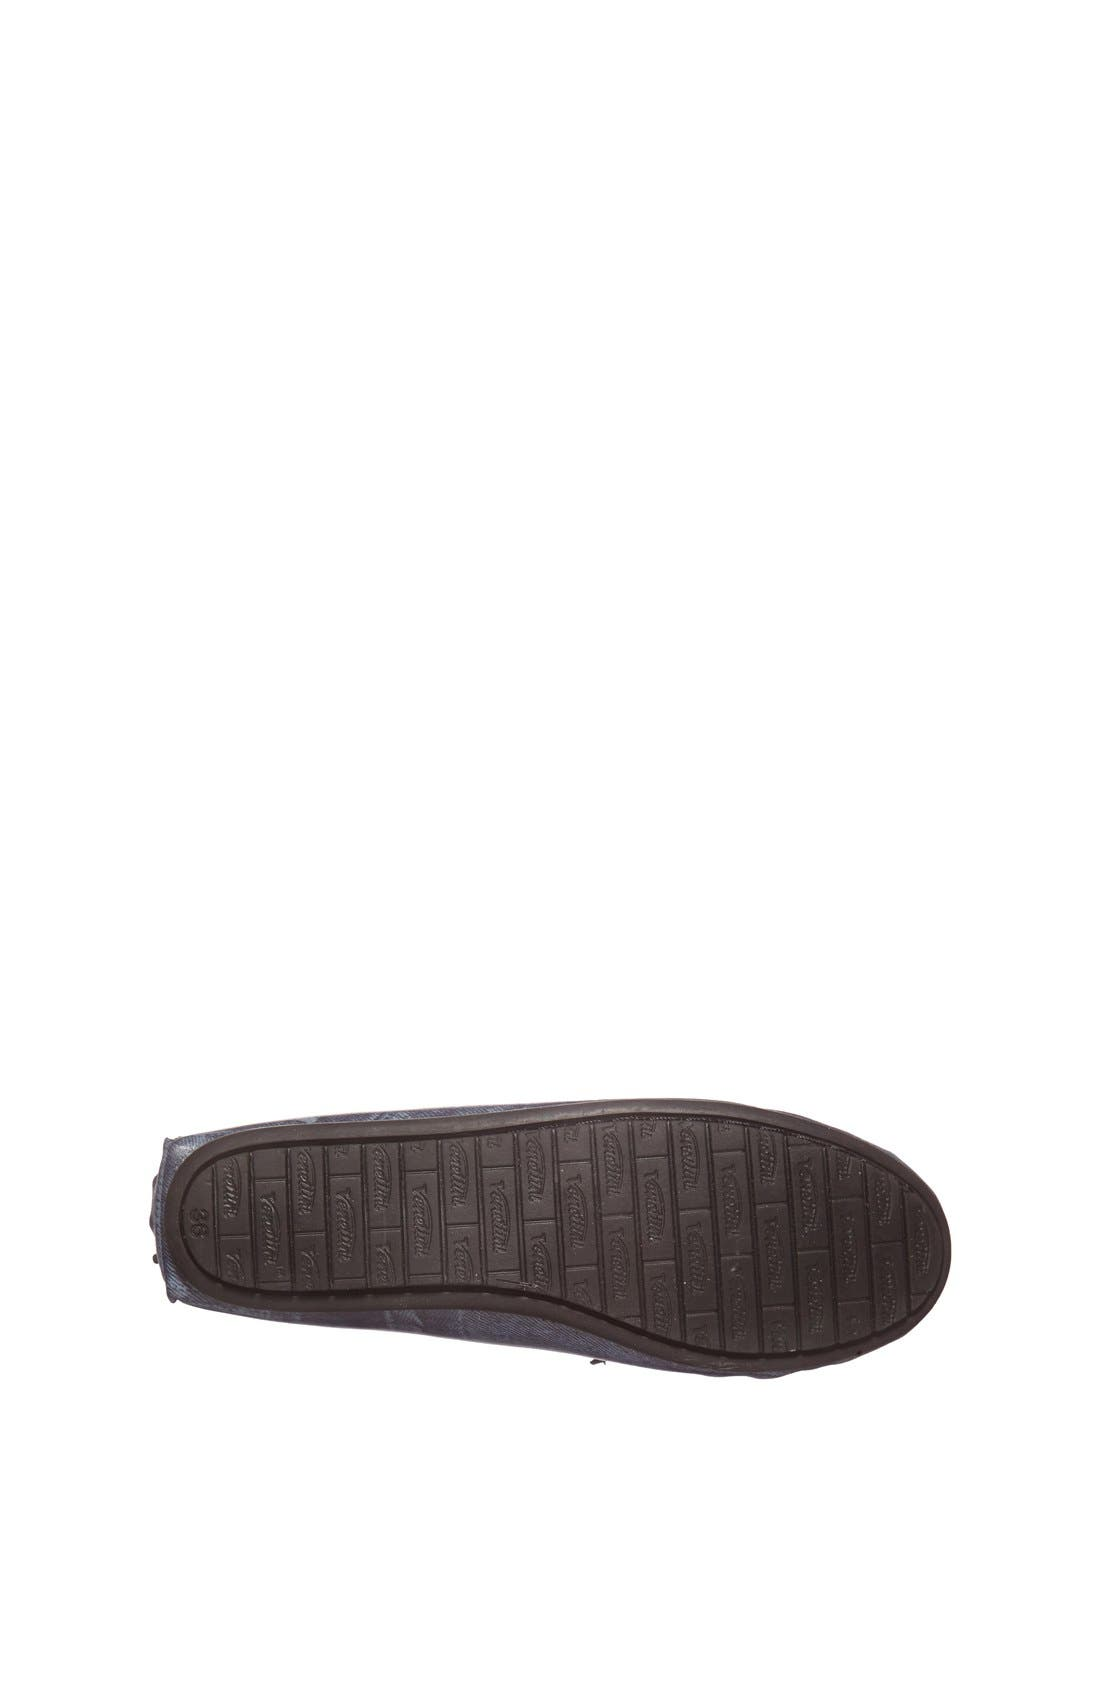 Alternate Image 4  - Venettini 'Morgan' Loafer (Toddler, Little Kid & Big Kid)